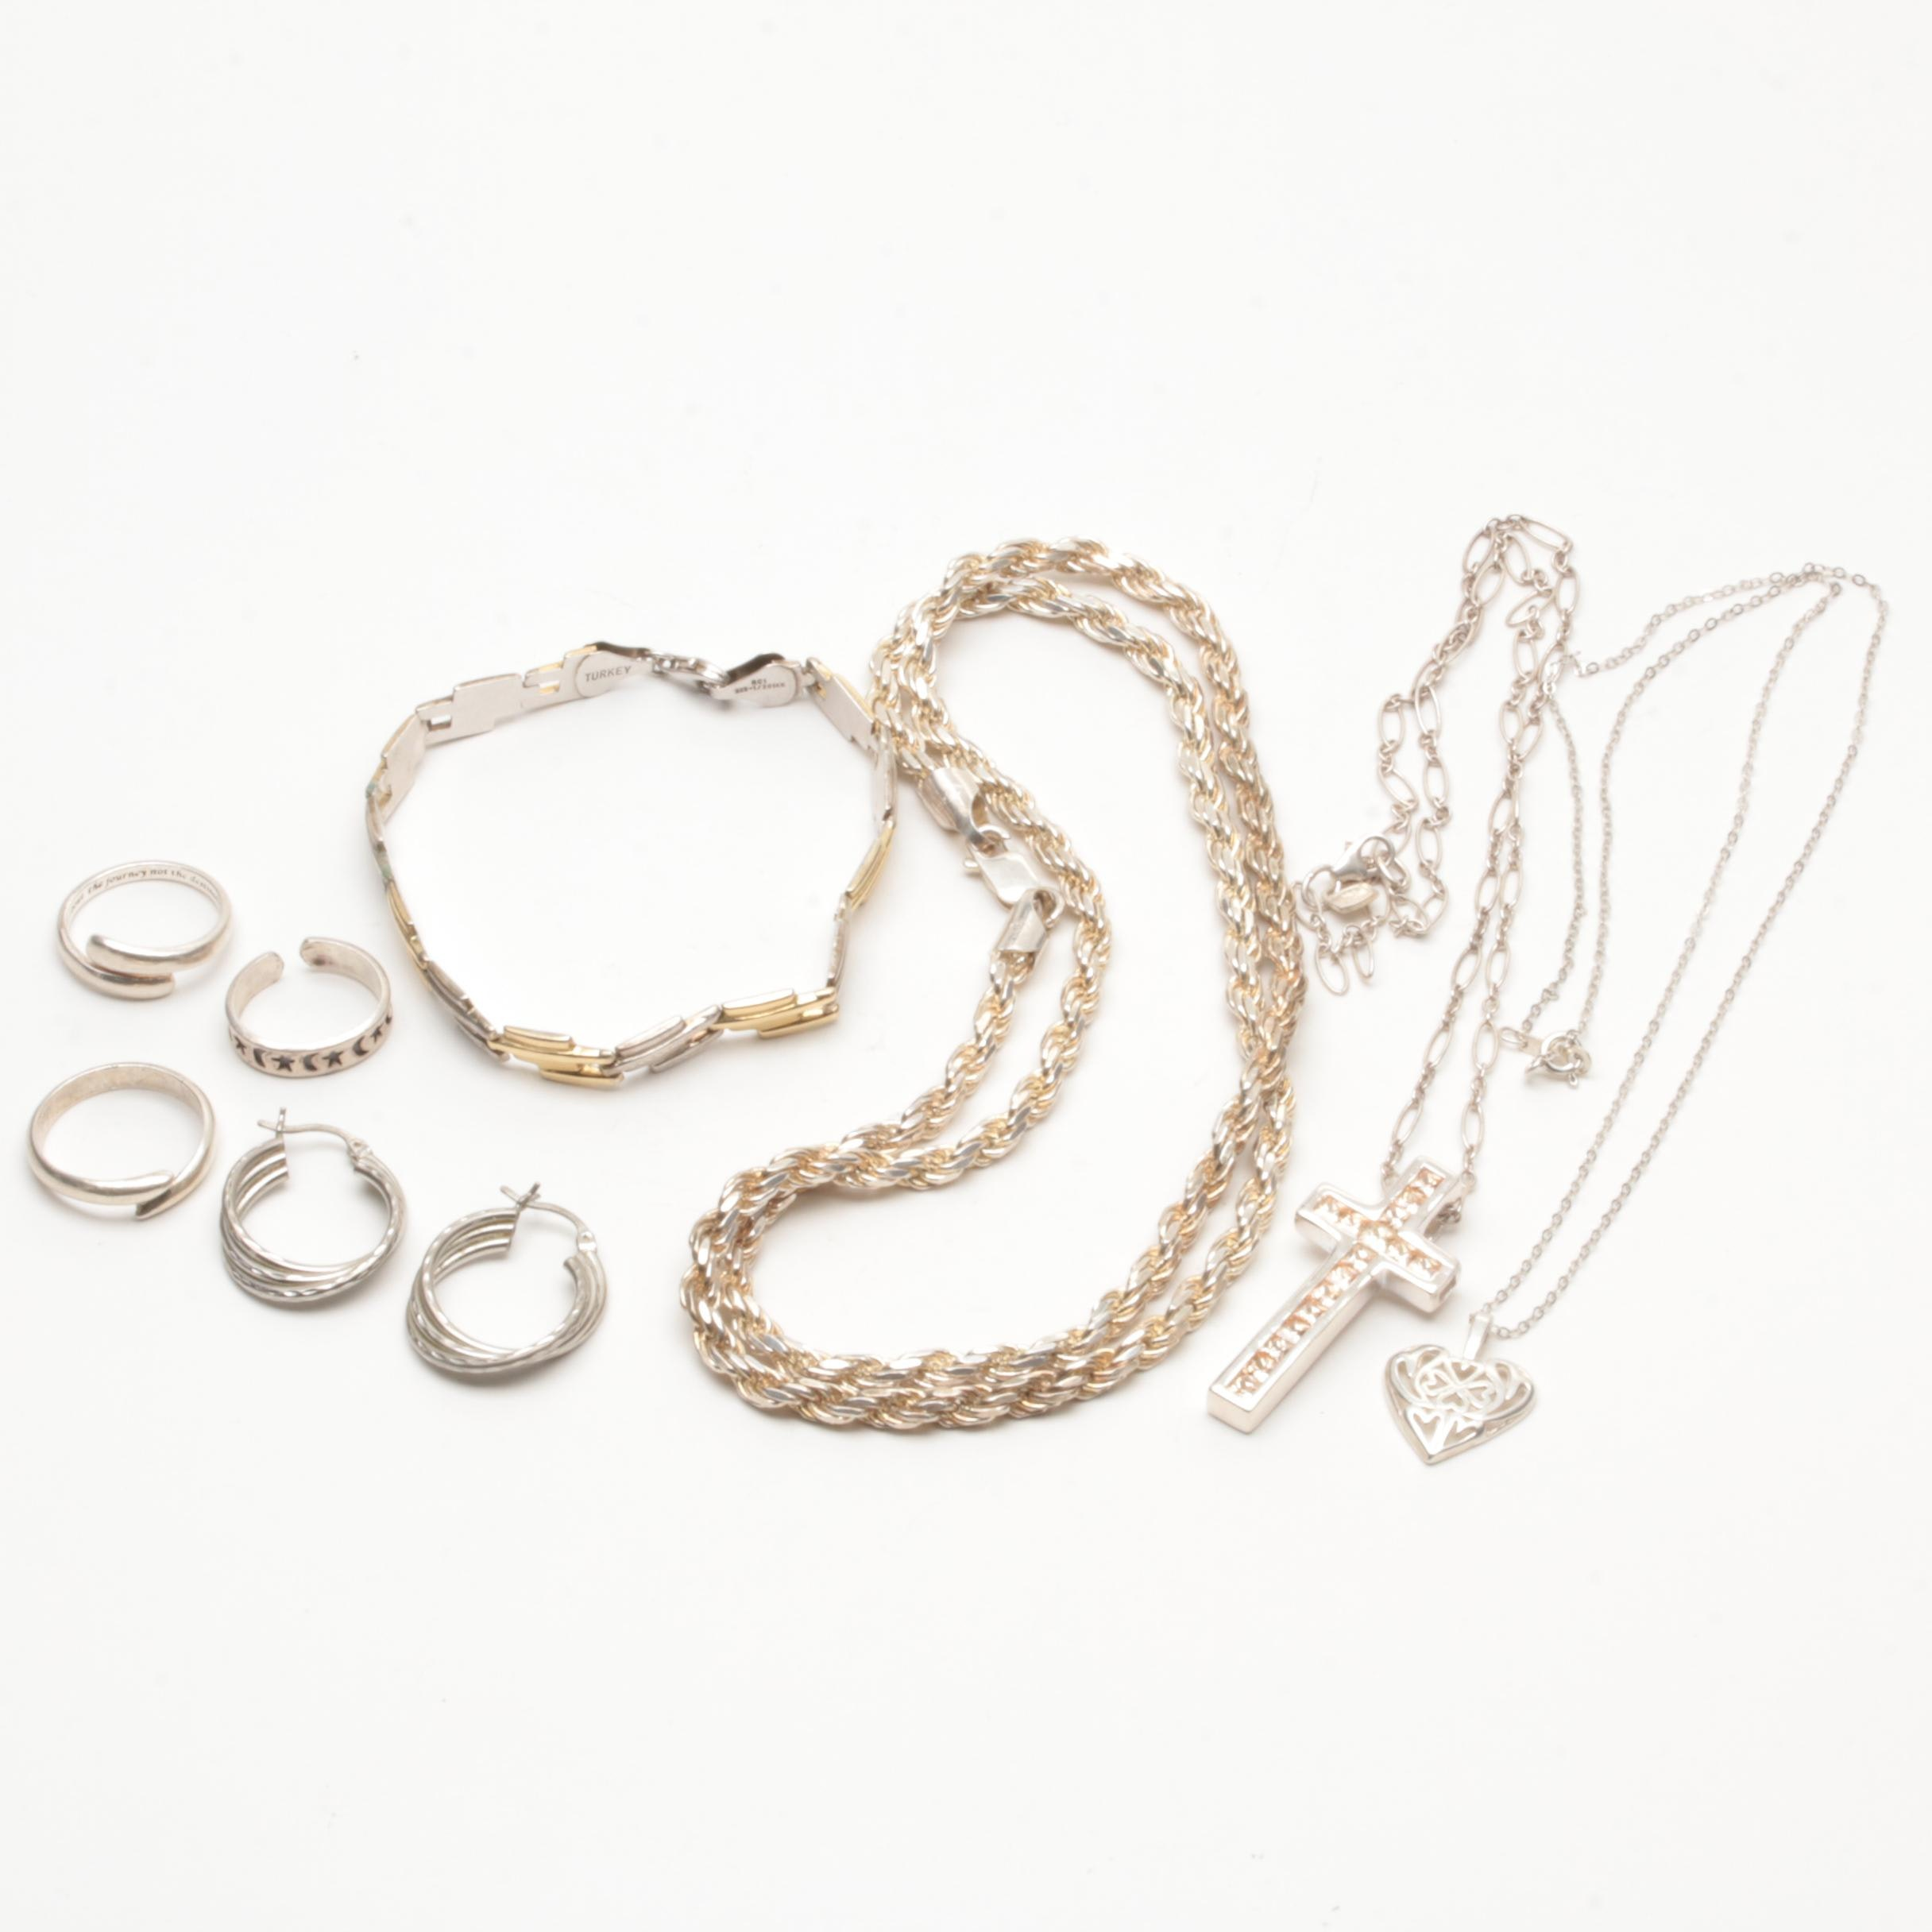 Sterling Silver Jewelry Collection Including Cubic Zirconia and Fine Silver